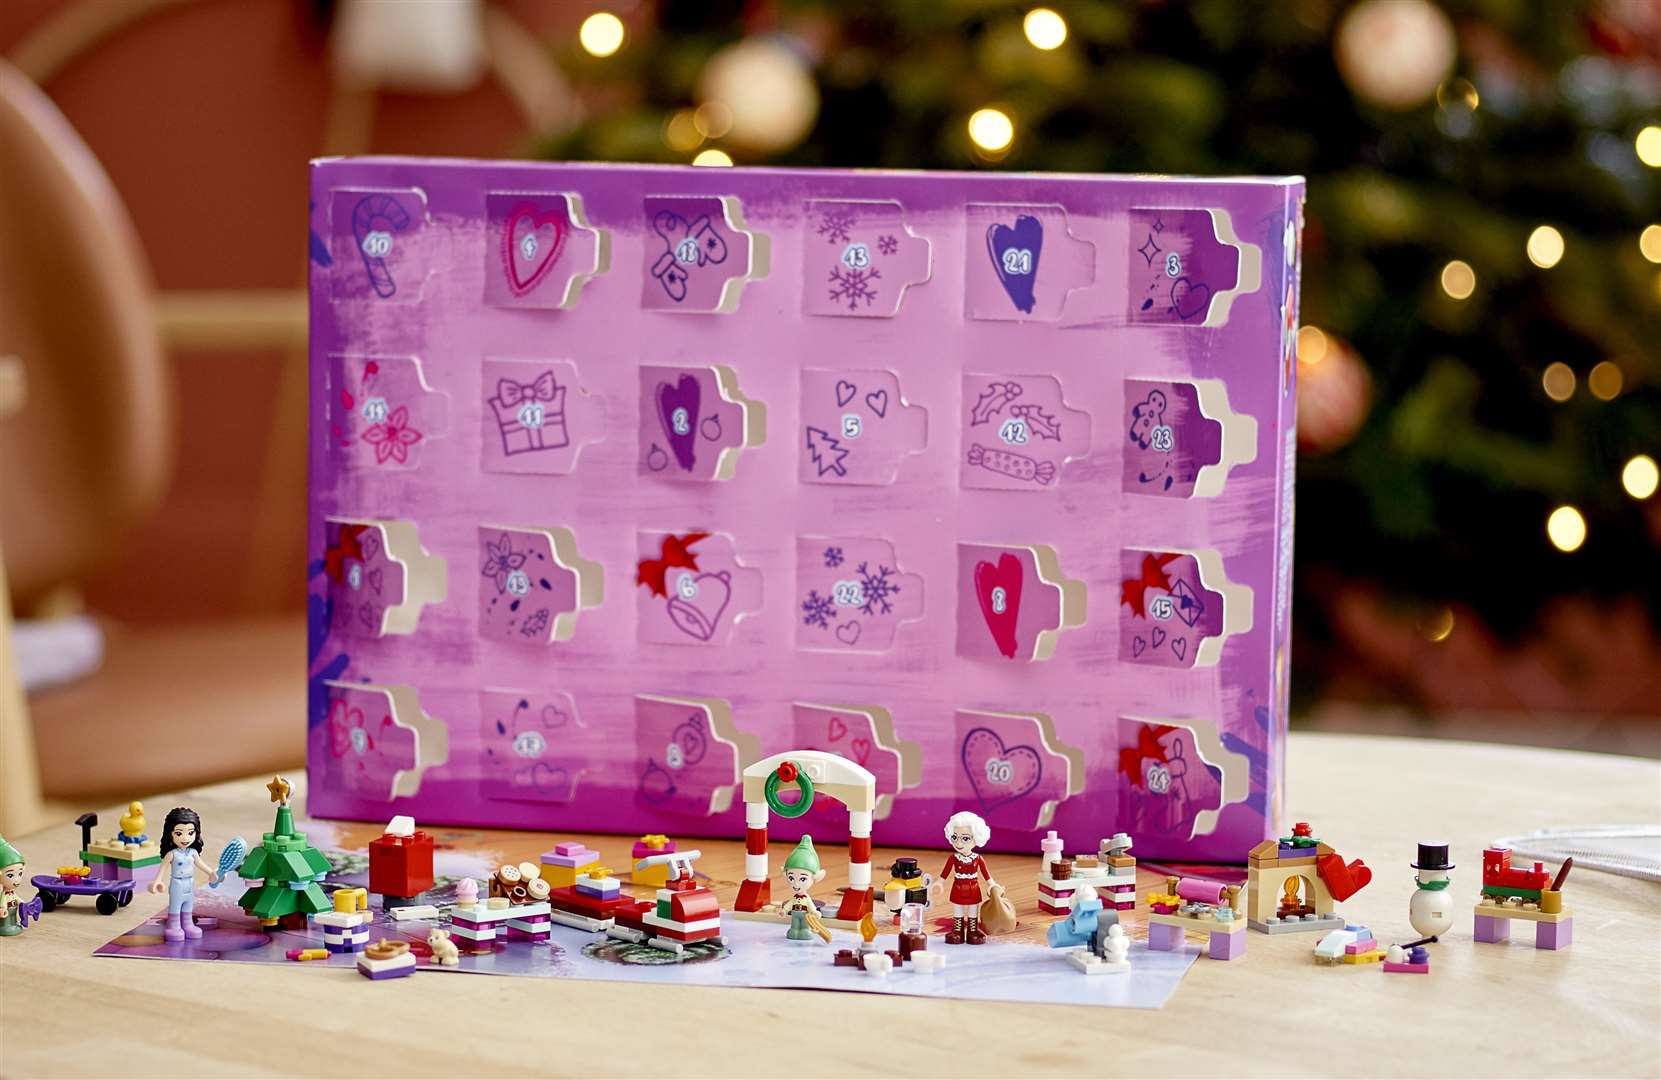 LEGO advent calendars are now being released for Christmas